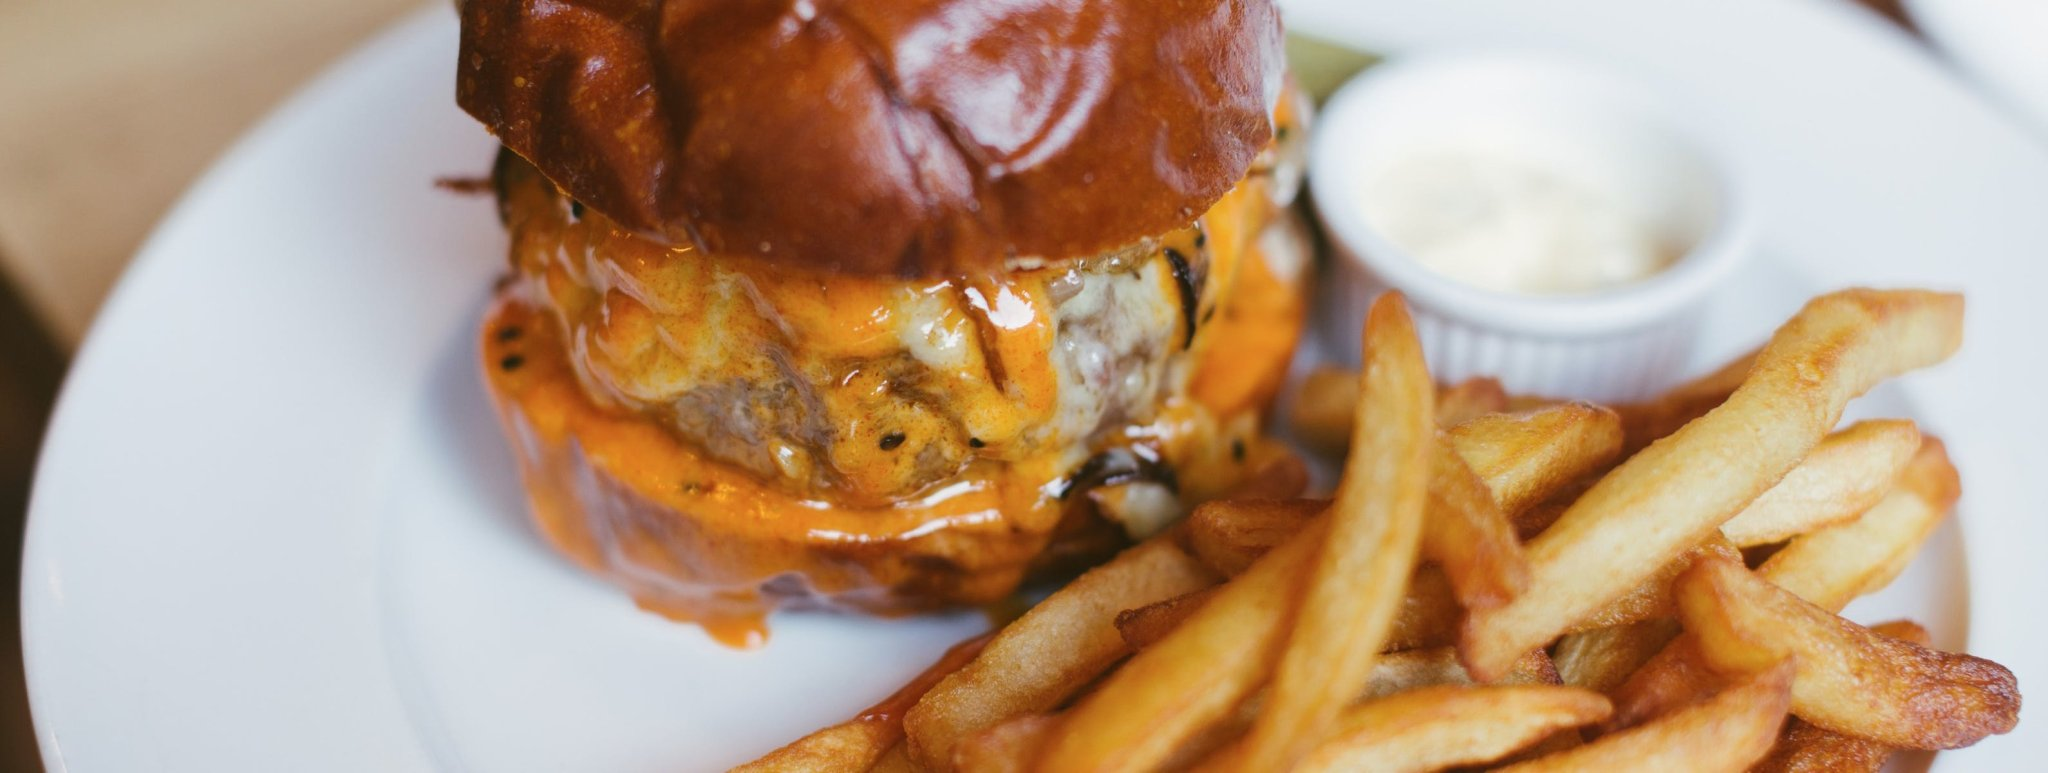 The 23 Best Burgers In NYC - New York - The Infatuation